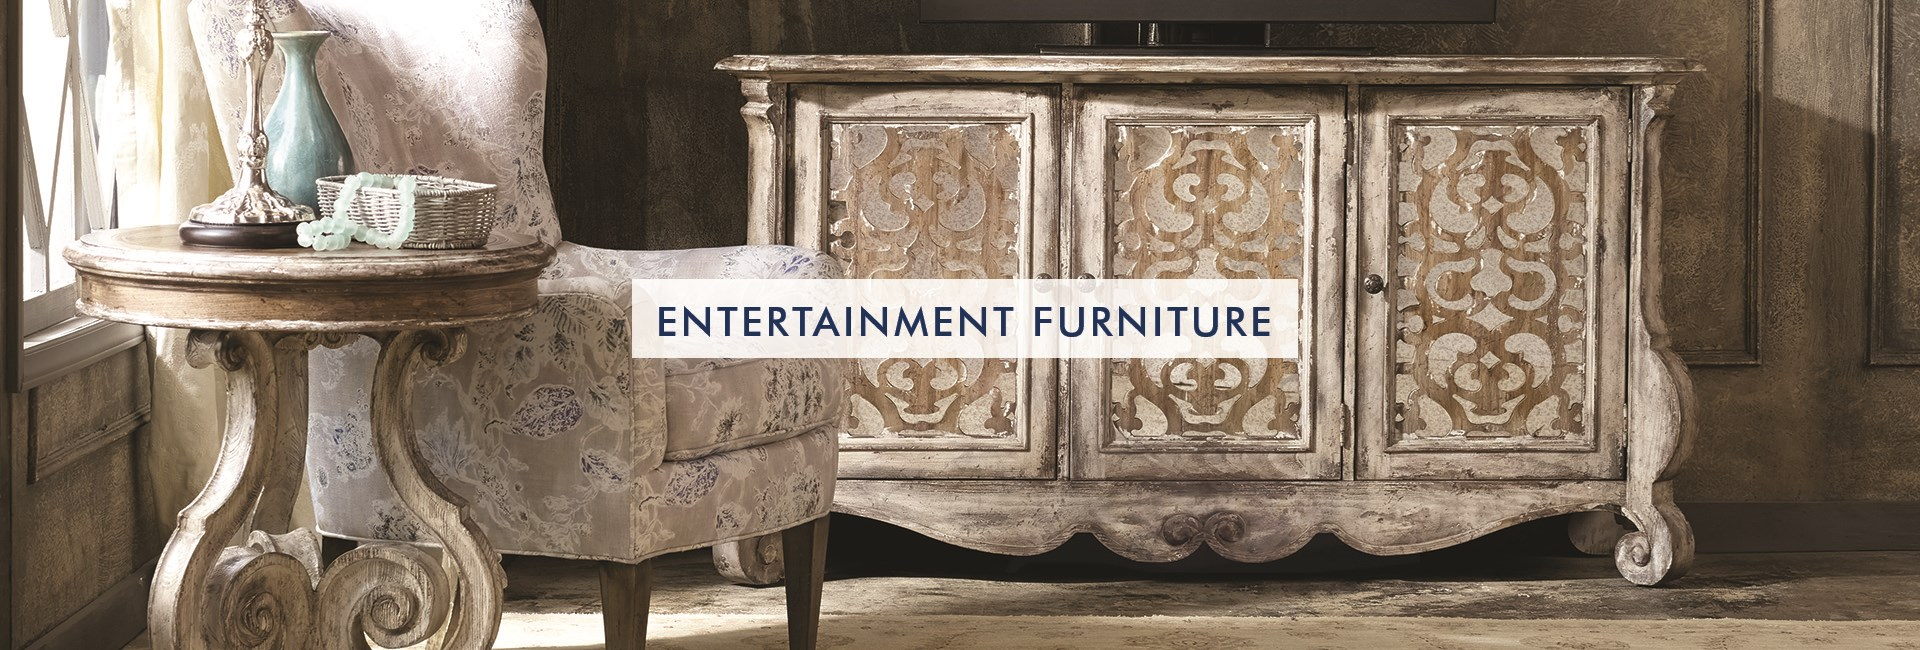 Shop Entertainment Furniture Beaumont Port Arthur Lake